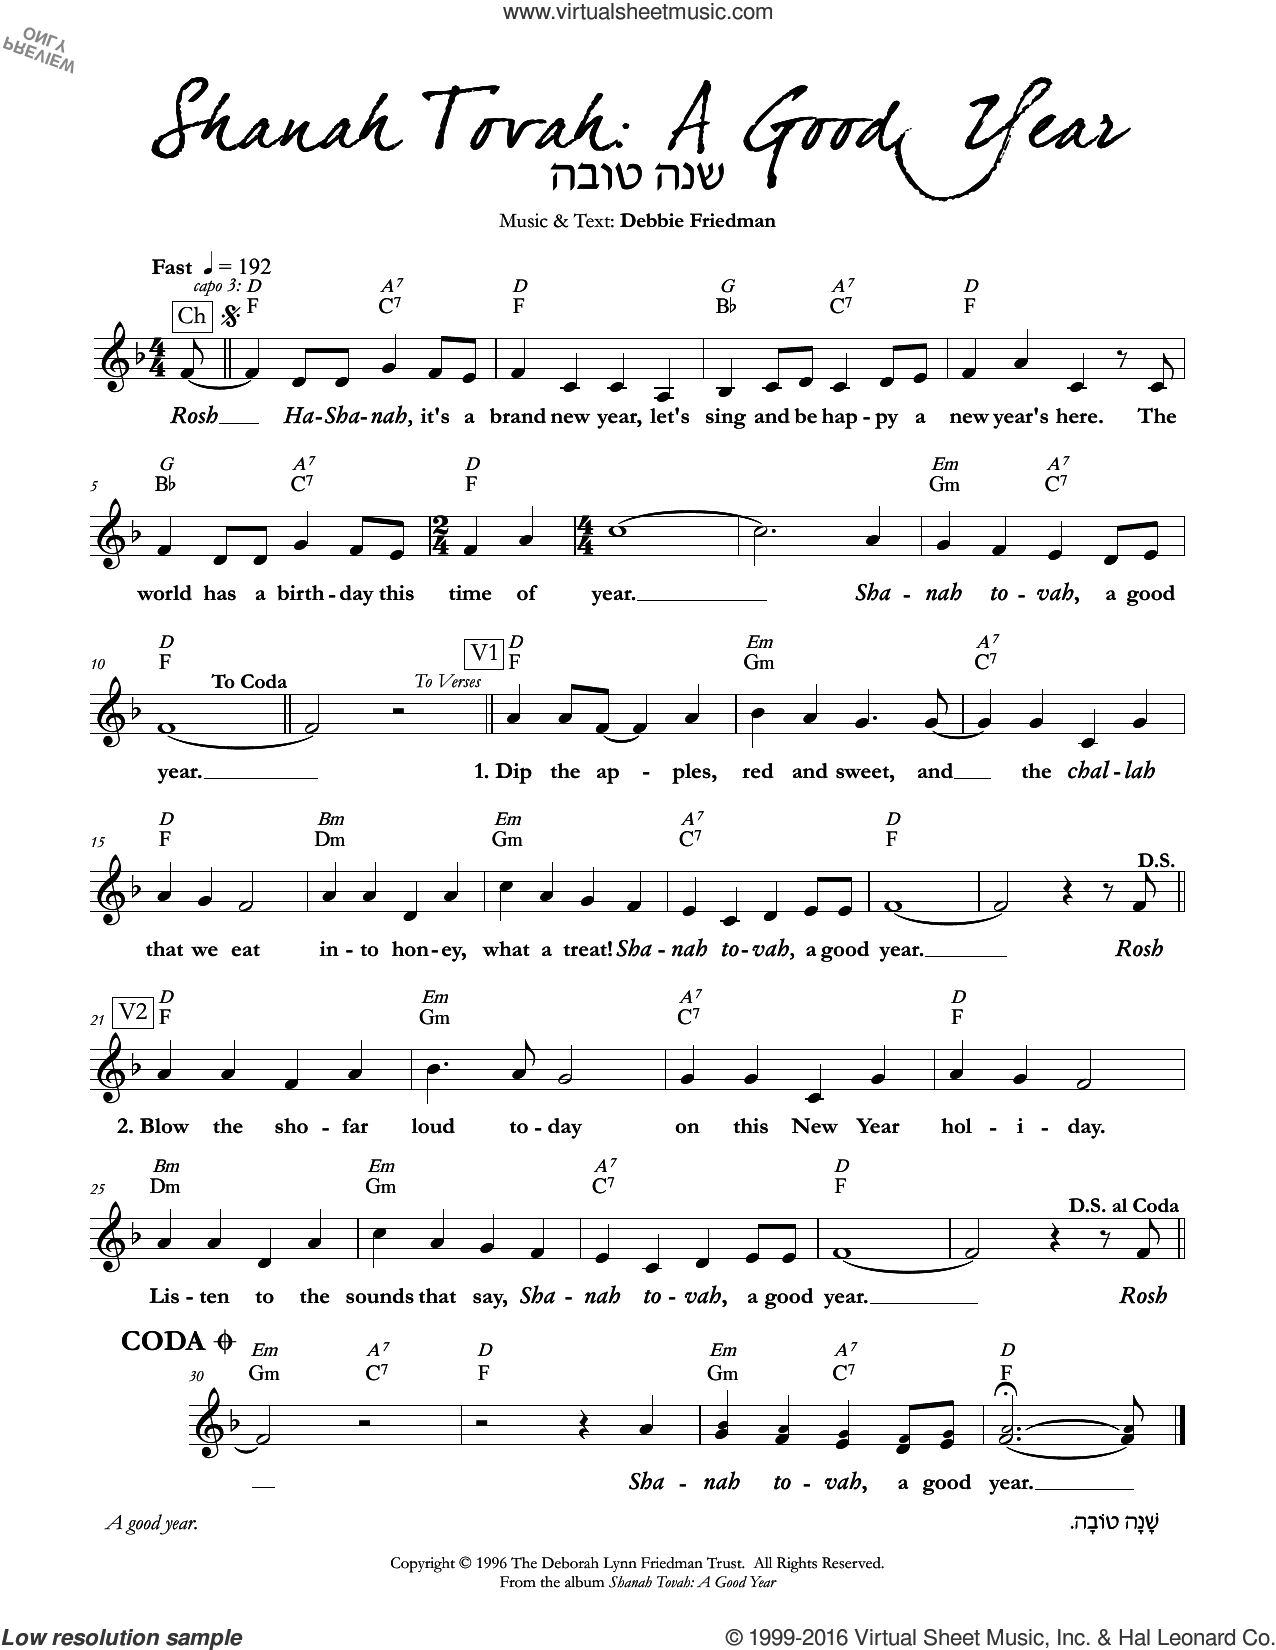 Shanah Tovah: A Good Year sheet music for voice and other instruments (fake book) by Debbie Friedman. Score Image Preview.